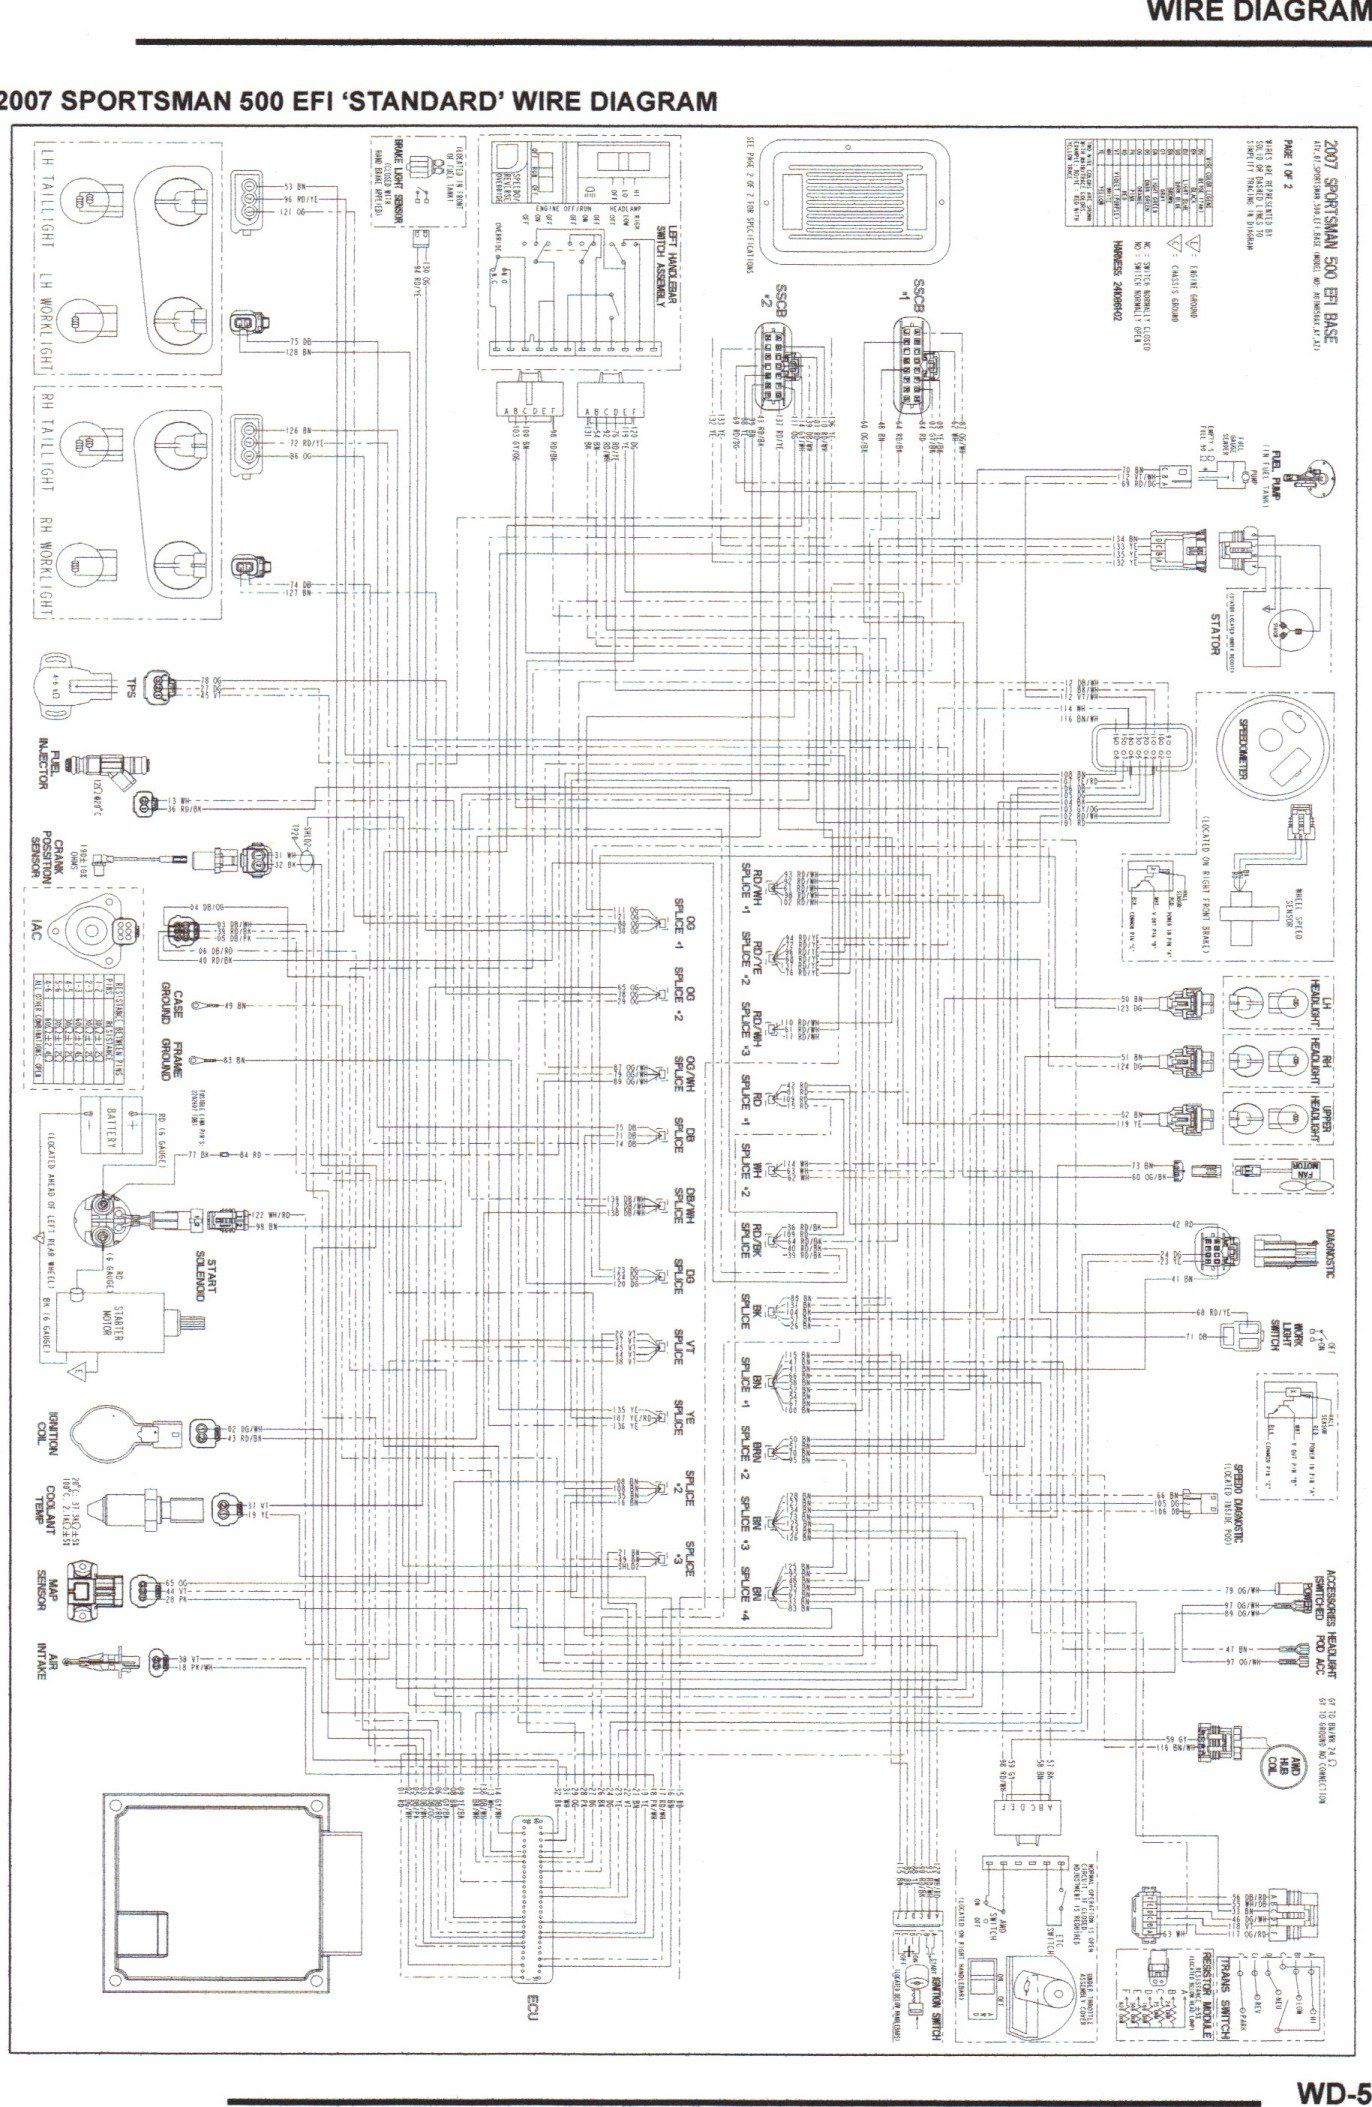 comfortable 2004 polaris sportsman wiring diagram images honda rebel 450 wiring diagram honda rebel 450 wiring diagram honda rebel 450 wiring diagram honda rebel 450 wiring diagram